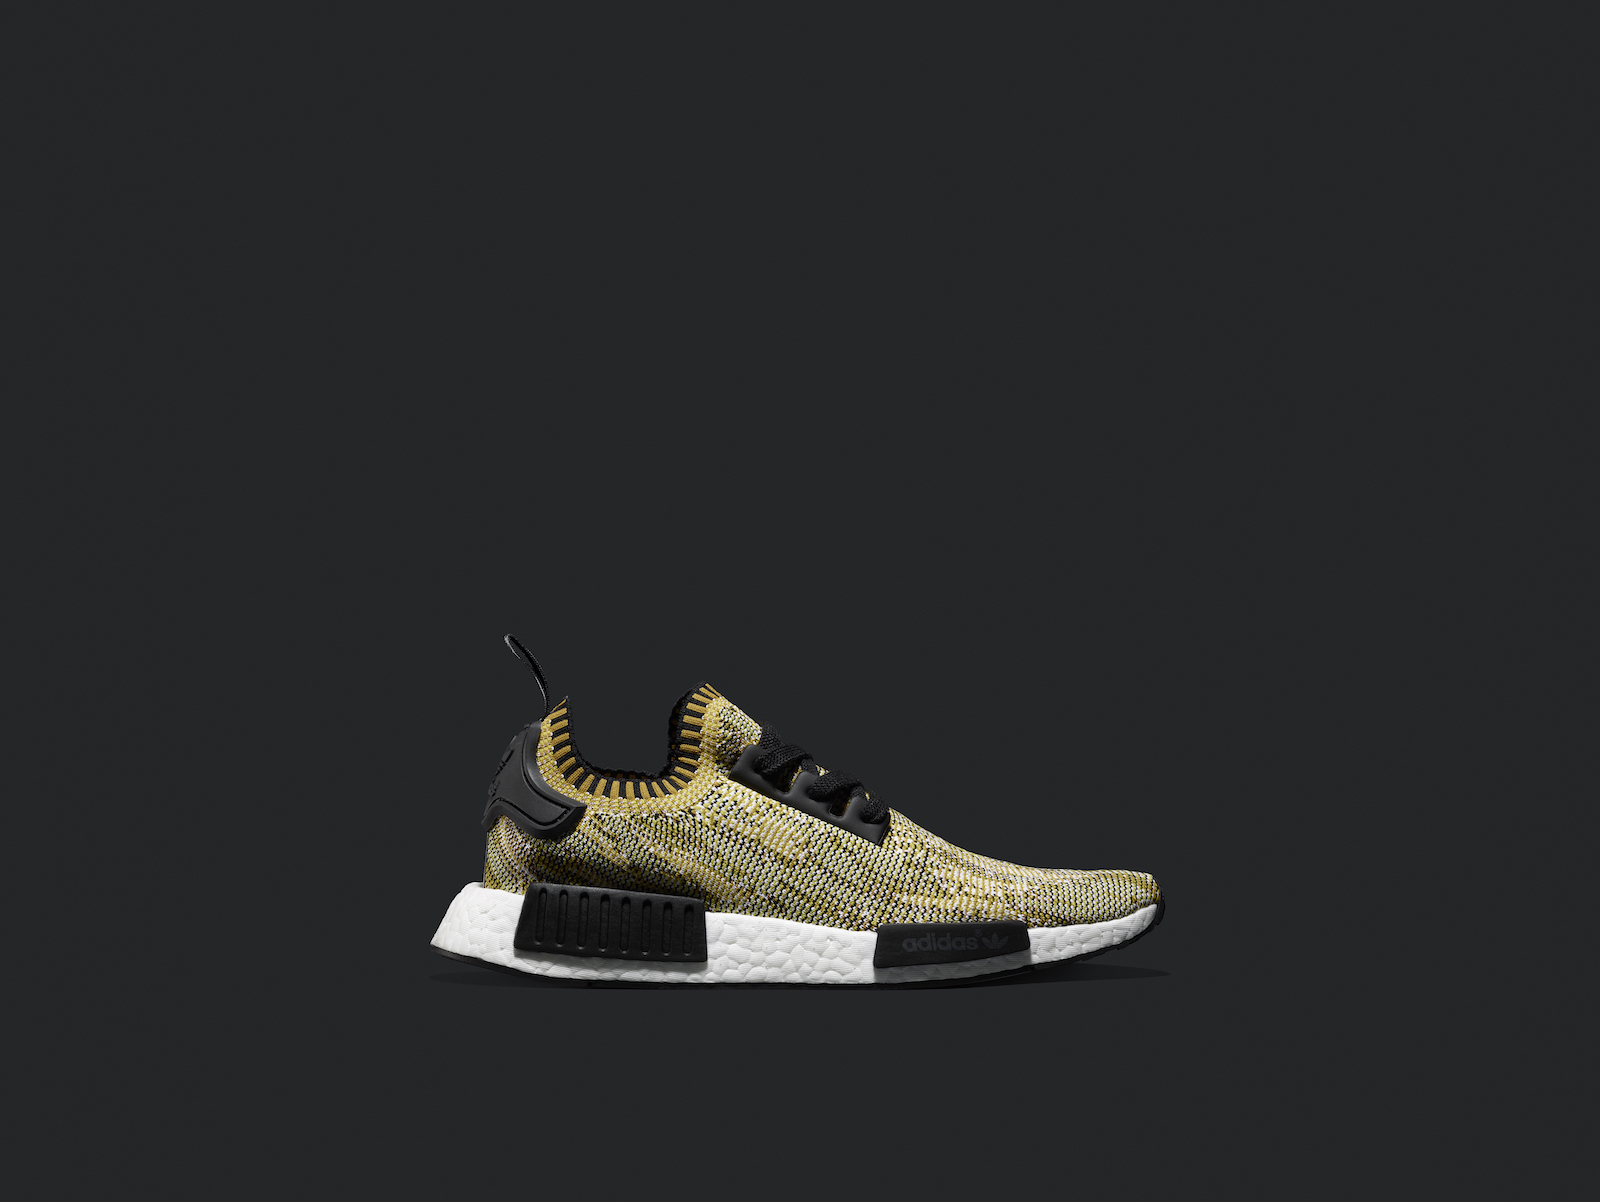 NMD_HeroShot_LATERAL_S42131_NMD